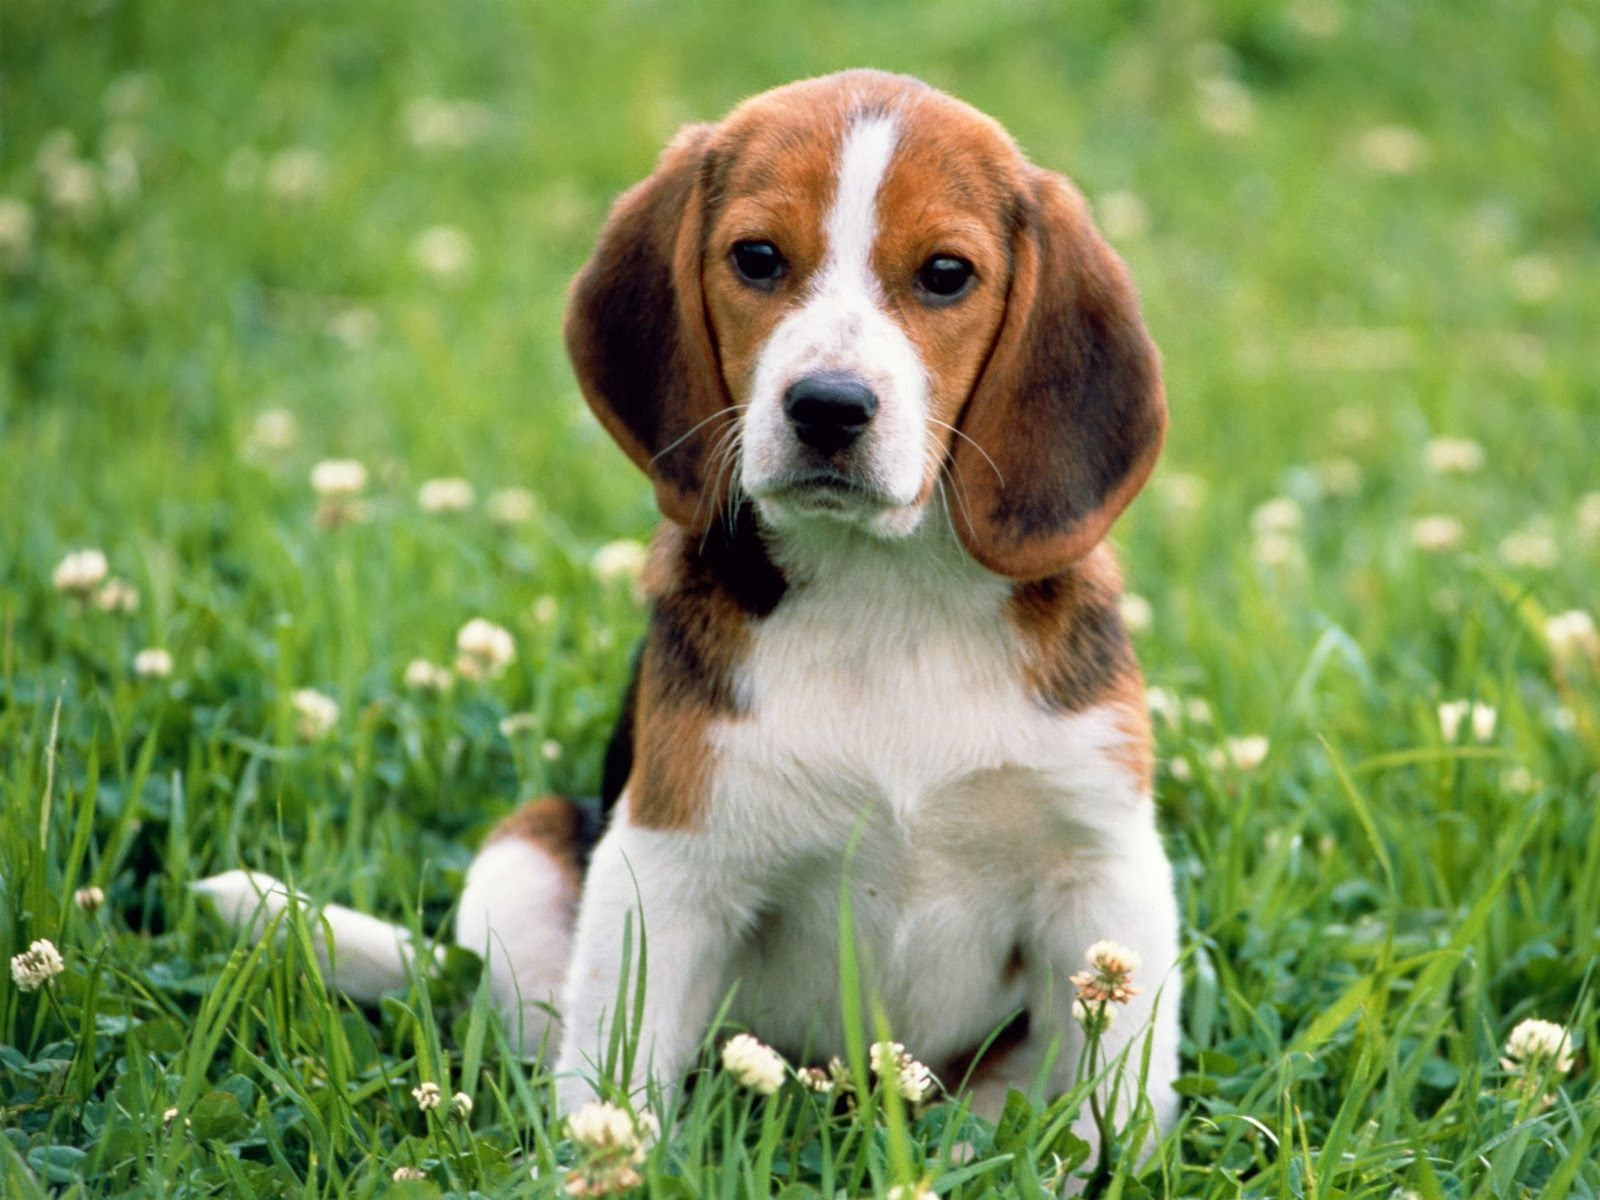 Basset Hound Beagle Dog Breed Beagle Puppy Cute Beagles